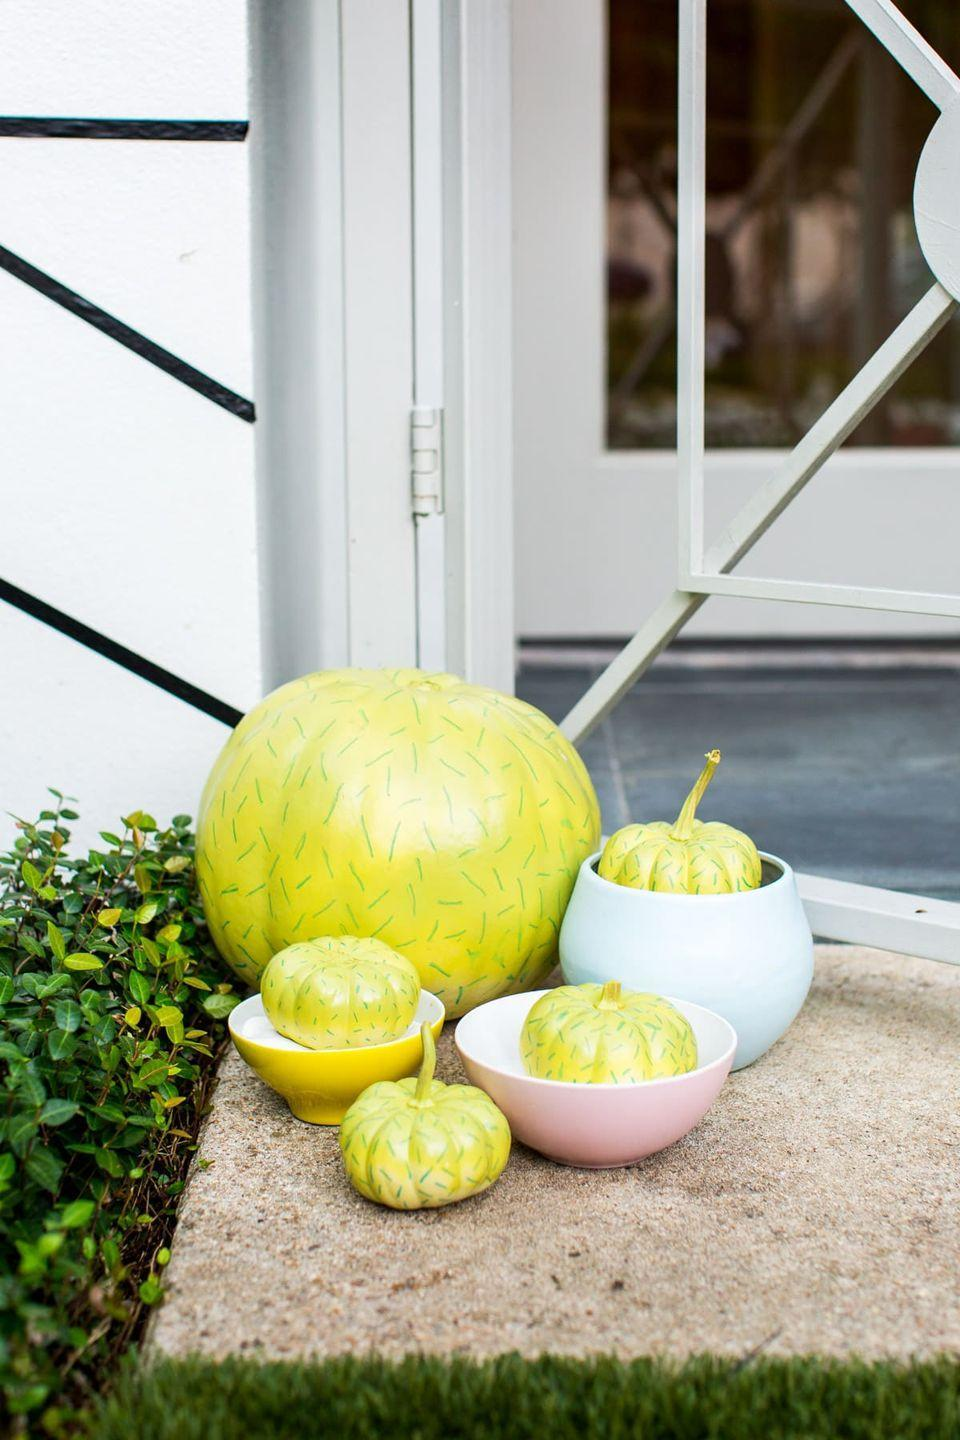 """<p>A dash of green paint turns ordinary pumpkins into extraordinary ones. Throw them into small, colorful pots to emphasize the resemblance. </p><p><strong>Get the tutorial at <a href=""""https://sugarandcloth.com/palm-springs-inspired-halloween-decor/"""" rel=""""nofollow noopener"""" target=""""_blank"""" data-ylk=""""slk:Sugar and Cloth"""" class=""""link rapid-noclick-resp"""">Sugar and Cloth</a>.</strong></p><p><strong><a class=""""link rapid-noclick-resp"""" href=""""https://go.redirectingat.com?id=74968X1596630&url=https%3A%2F%2Fwww.walmart.com%2Fip%2FApple-Barrel-Acrylic-Paint-Bright-Red-8-Oz%2F17301373%3FvariantFieldId%3Dactual_color&sref=https%3A%2F%2Fwww.thepioneerwoman.com%2Fholidays-celebrations%2Fg32894423%2Foutdoor-halloween-decorations%2F"""" rel=""""nofollow noopener"""" target=""""_blank"""" data-ylk=""""slk:SHOP GREEN PAINT"""">SHOP GREEN PAINT </a></strong></p>"""